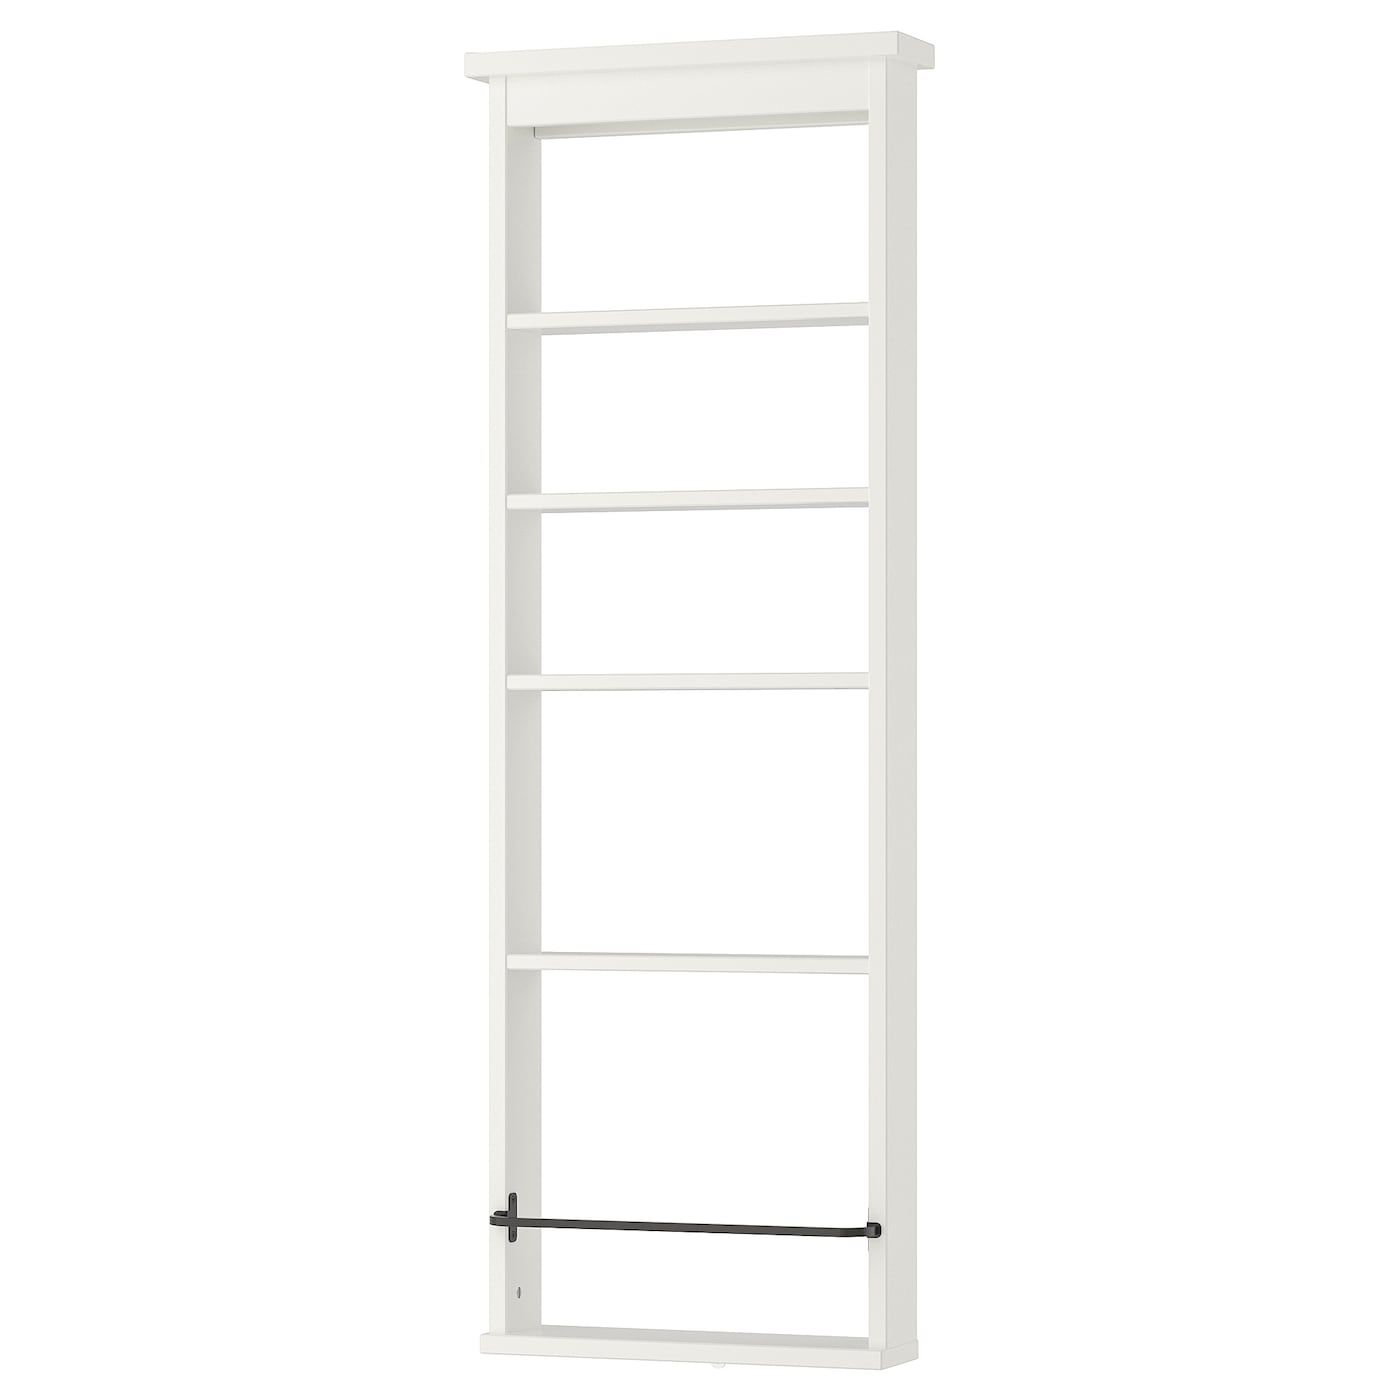 HEMNES Wall shelf - white - IKEA